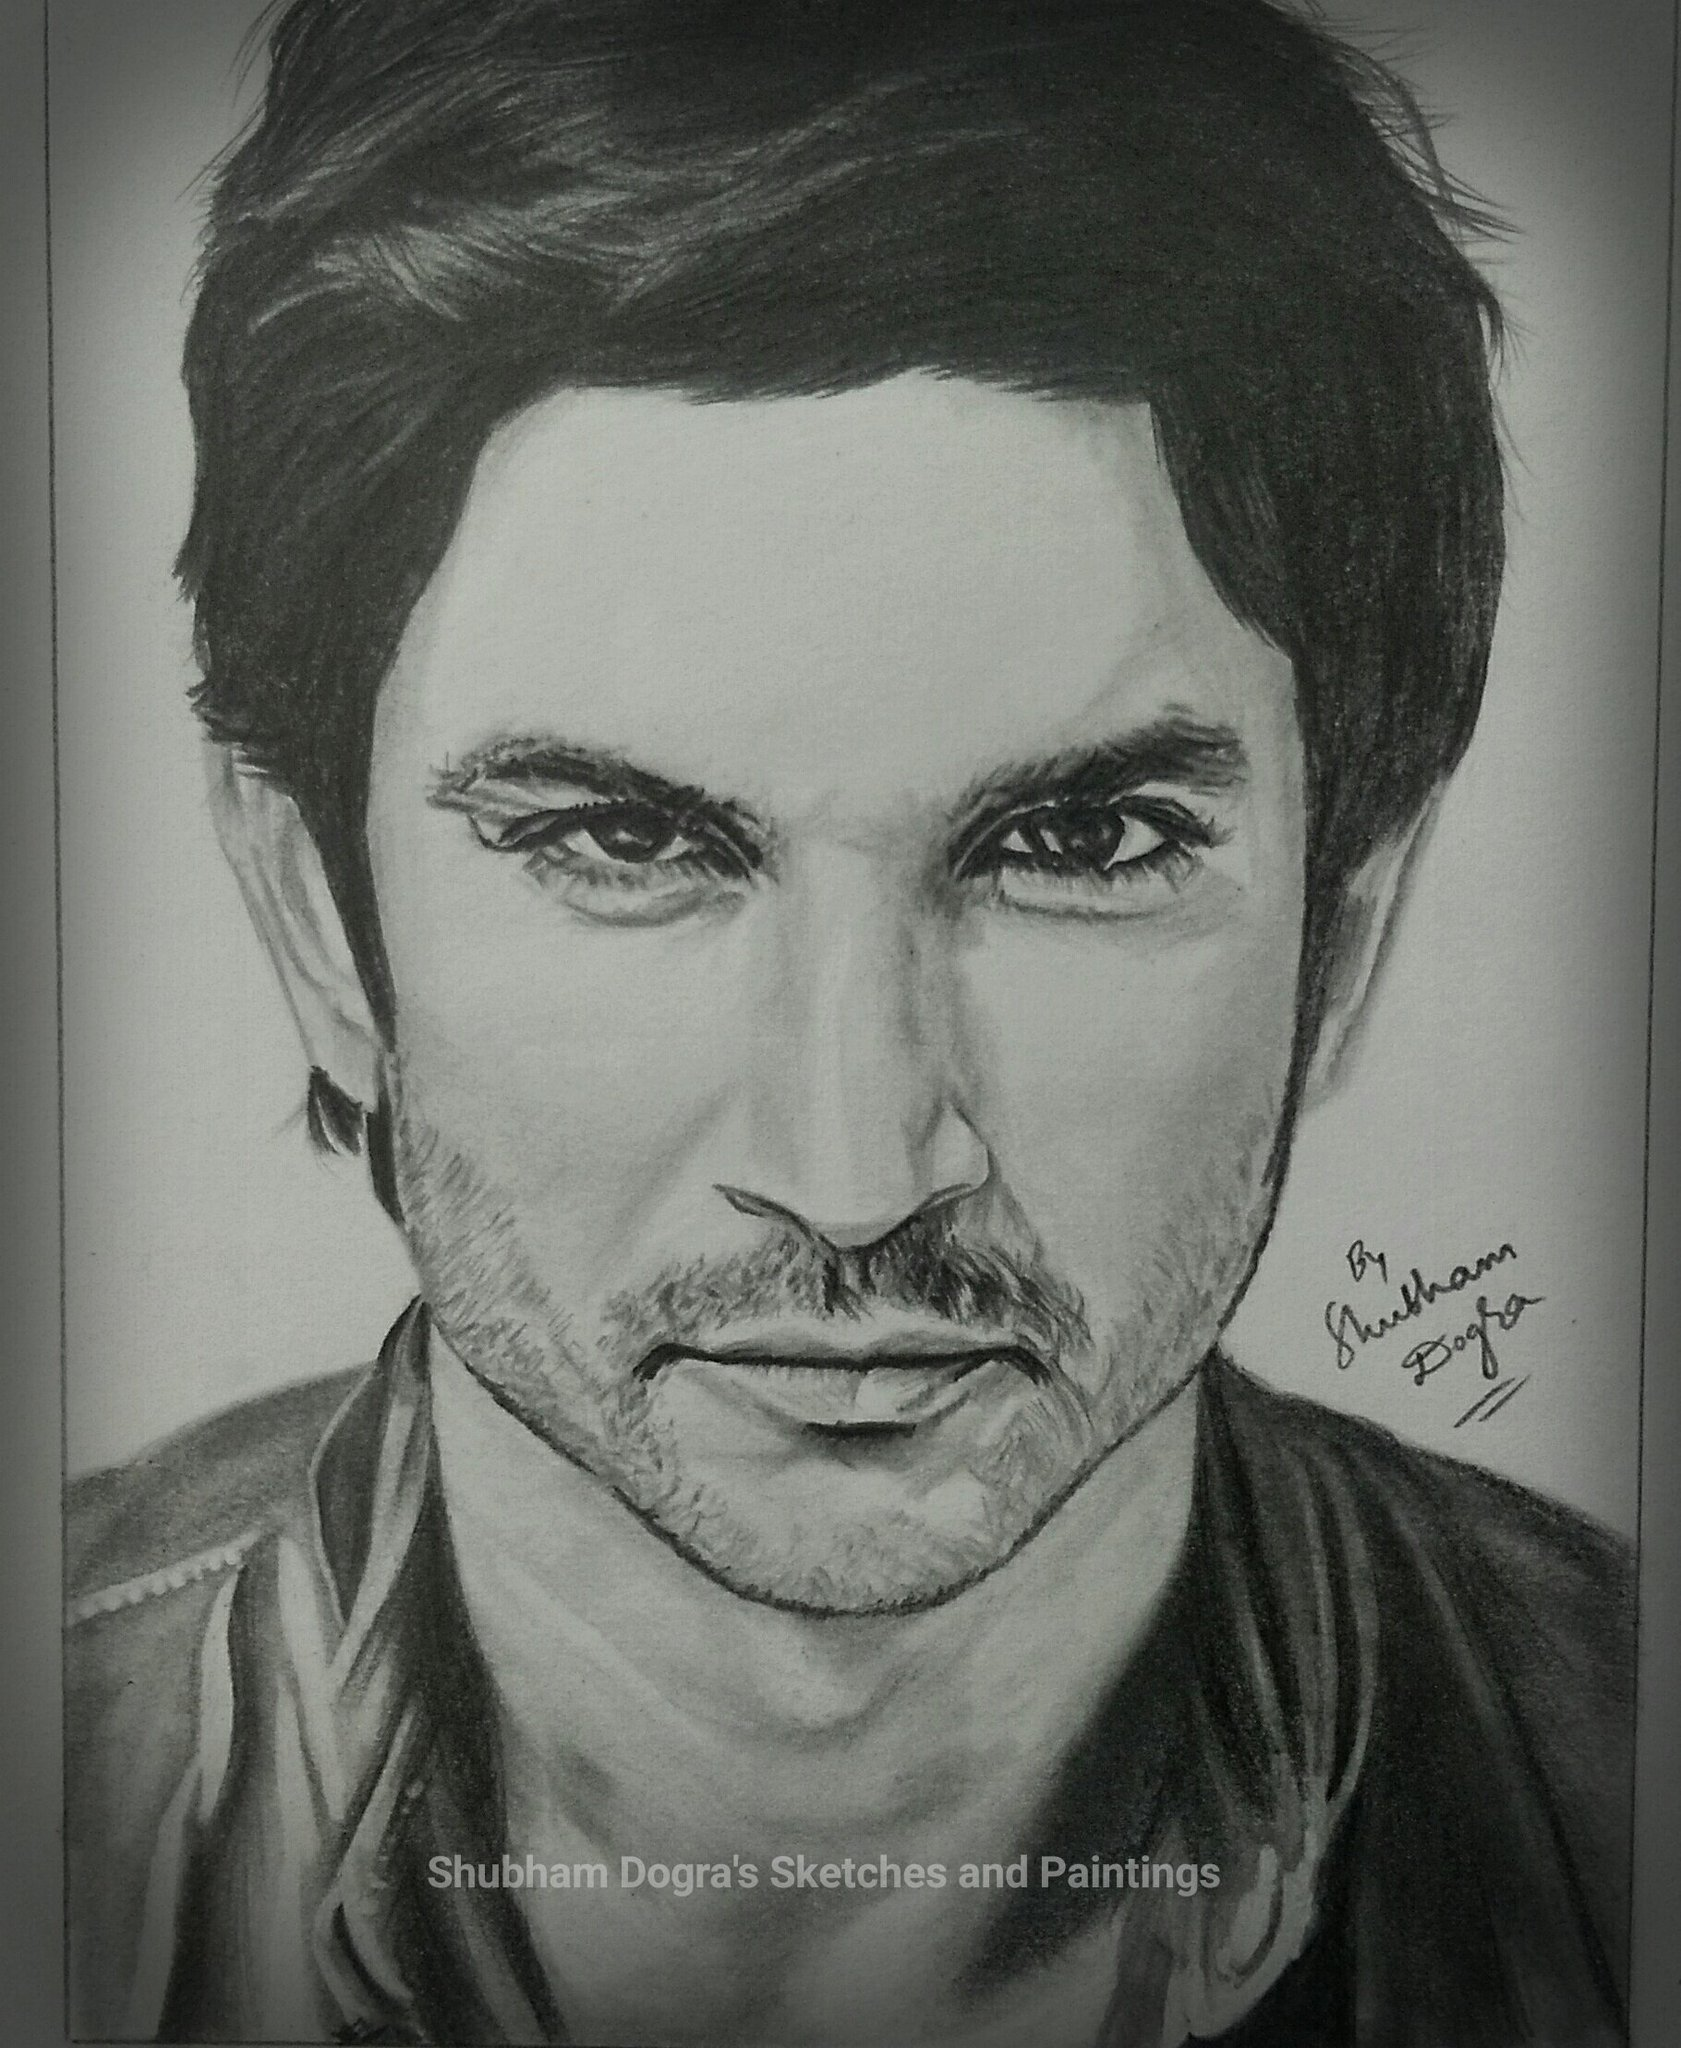 MSDian Shubham Dogra On Twitter U0026quot;@itsSSR Your Pencil Sketch Drawn By Me Today.. I Hope You Love ...